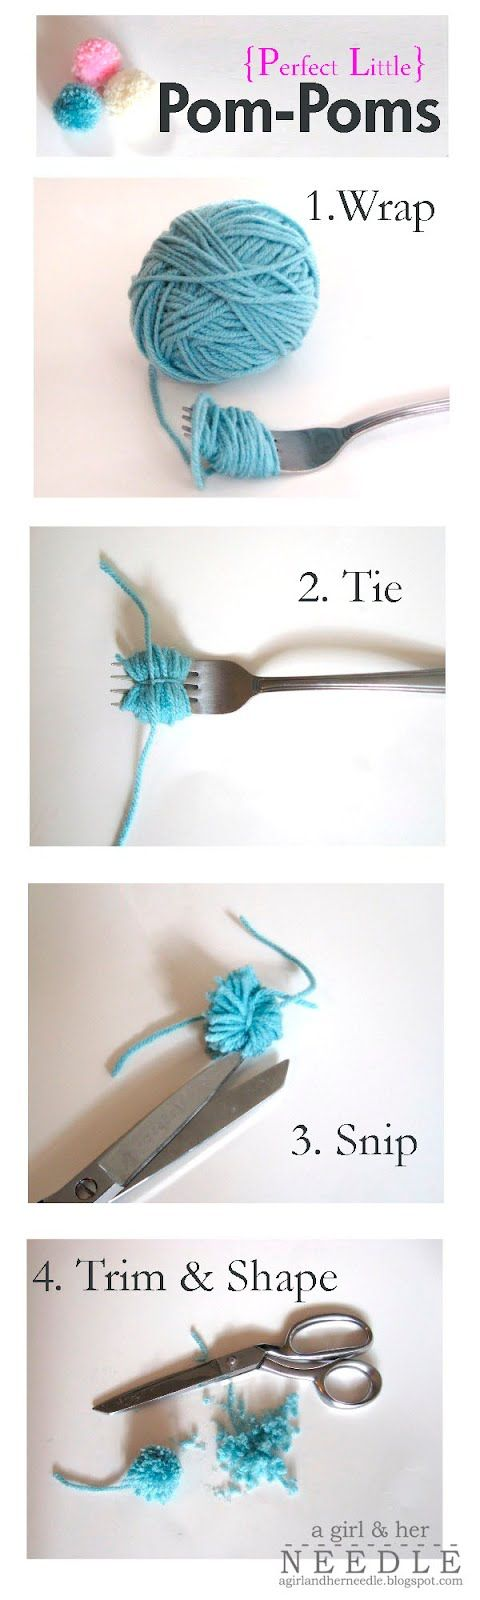 how to make a wool pom pom with a fork